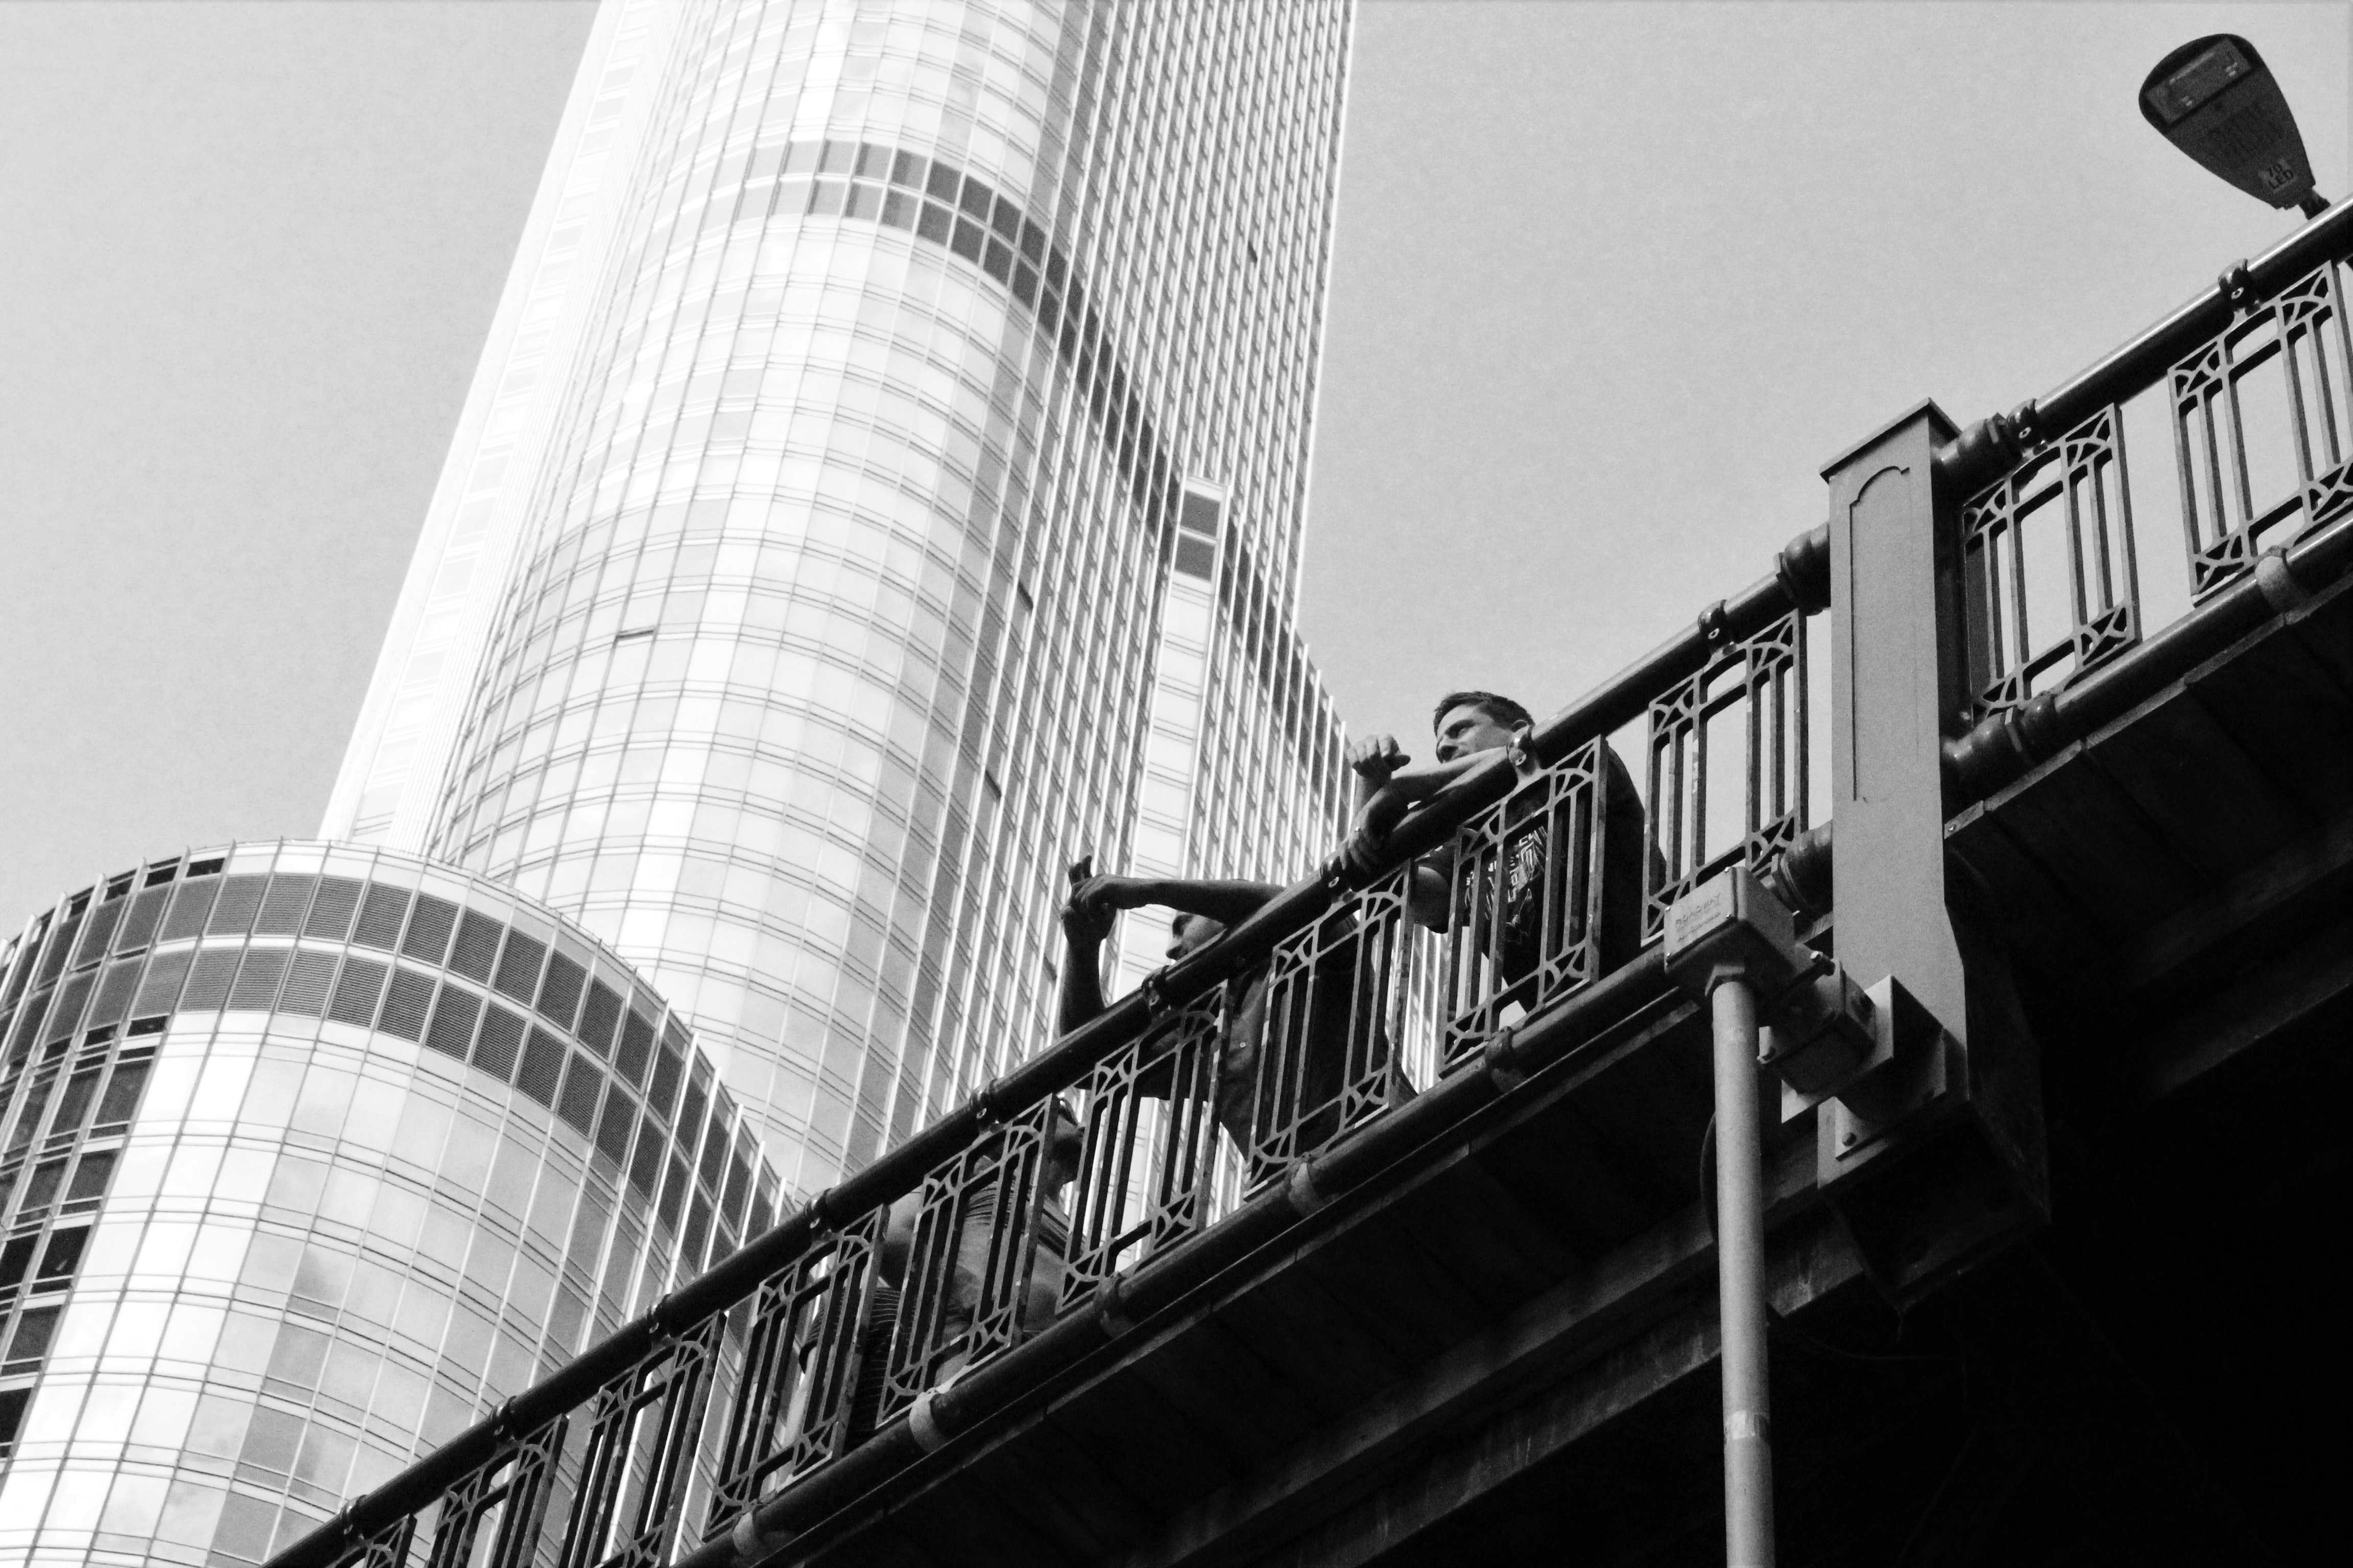 low-angle grayscale photography of two men leaning both arms on outdoor baluster beside high-rise building during daytime